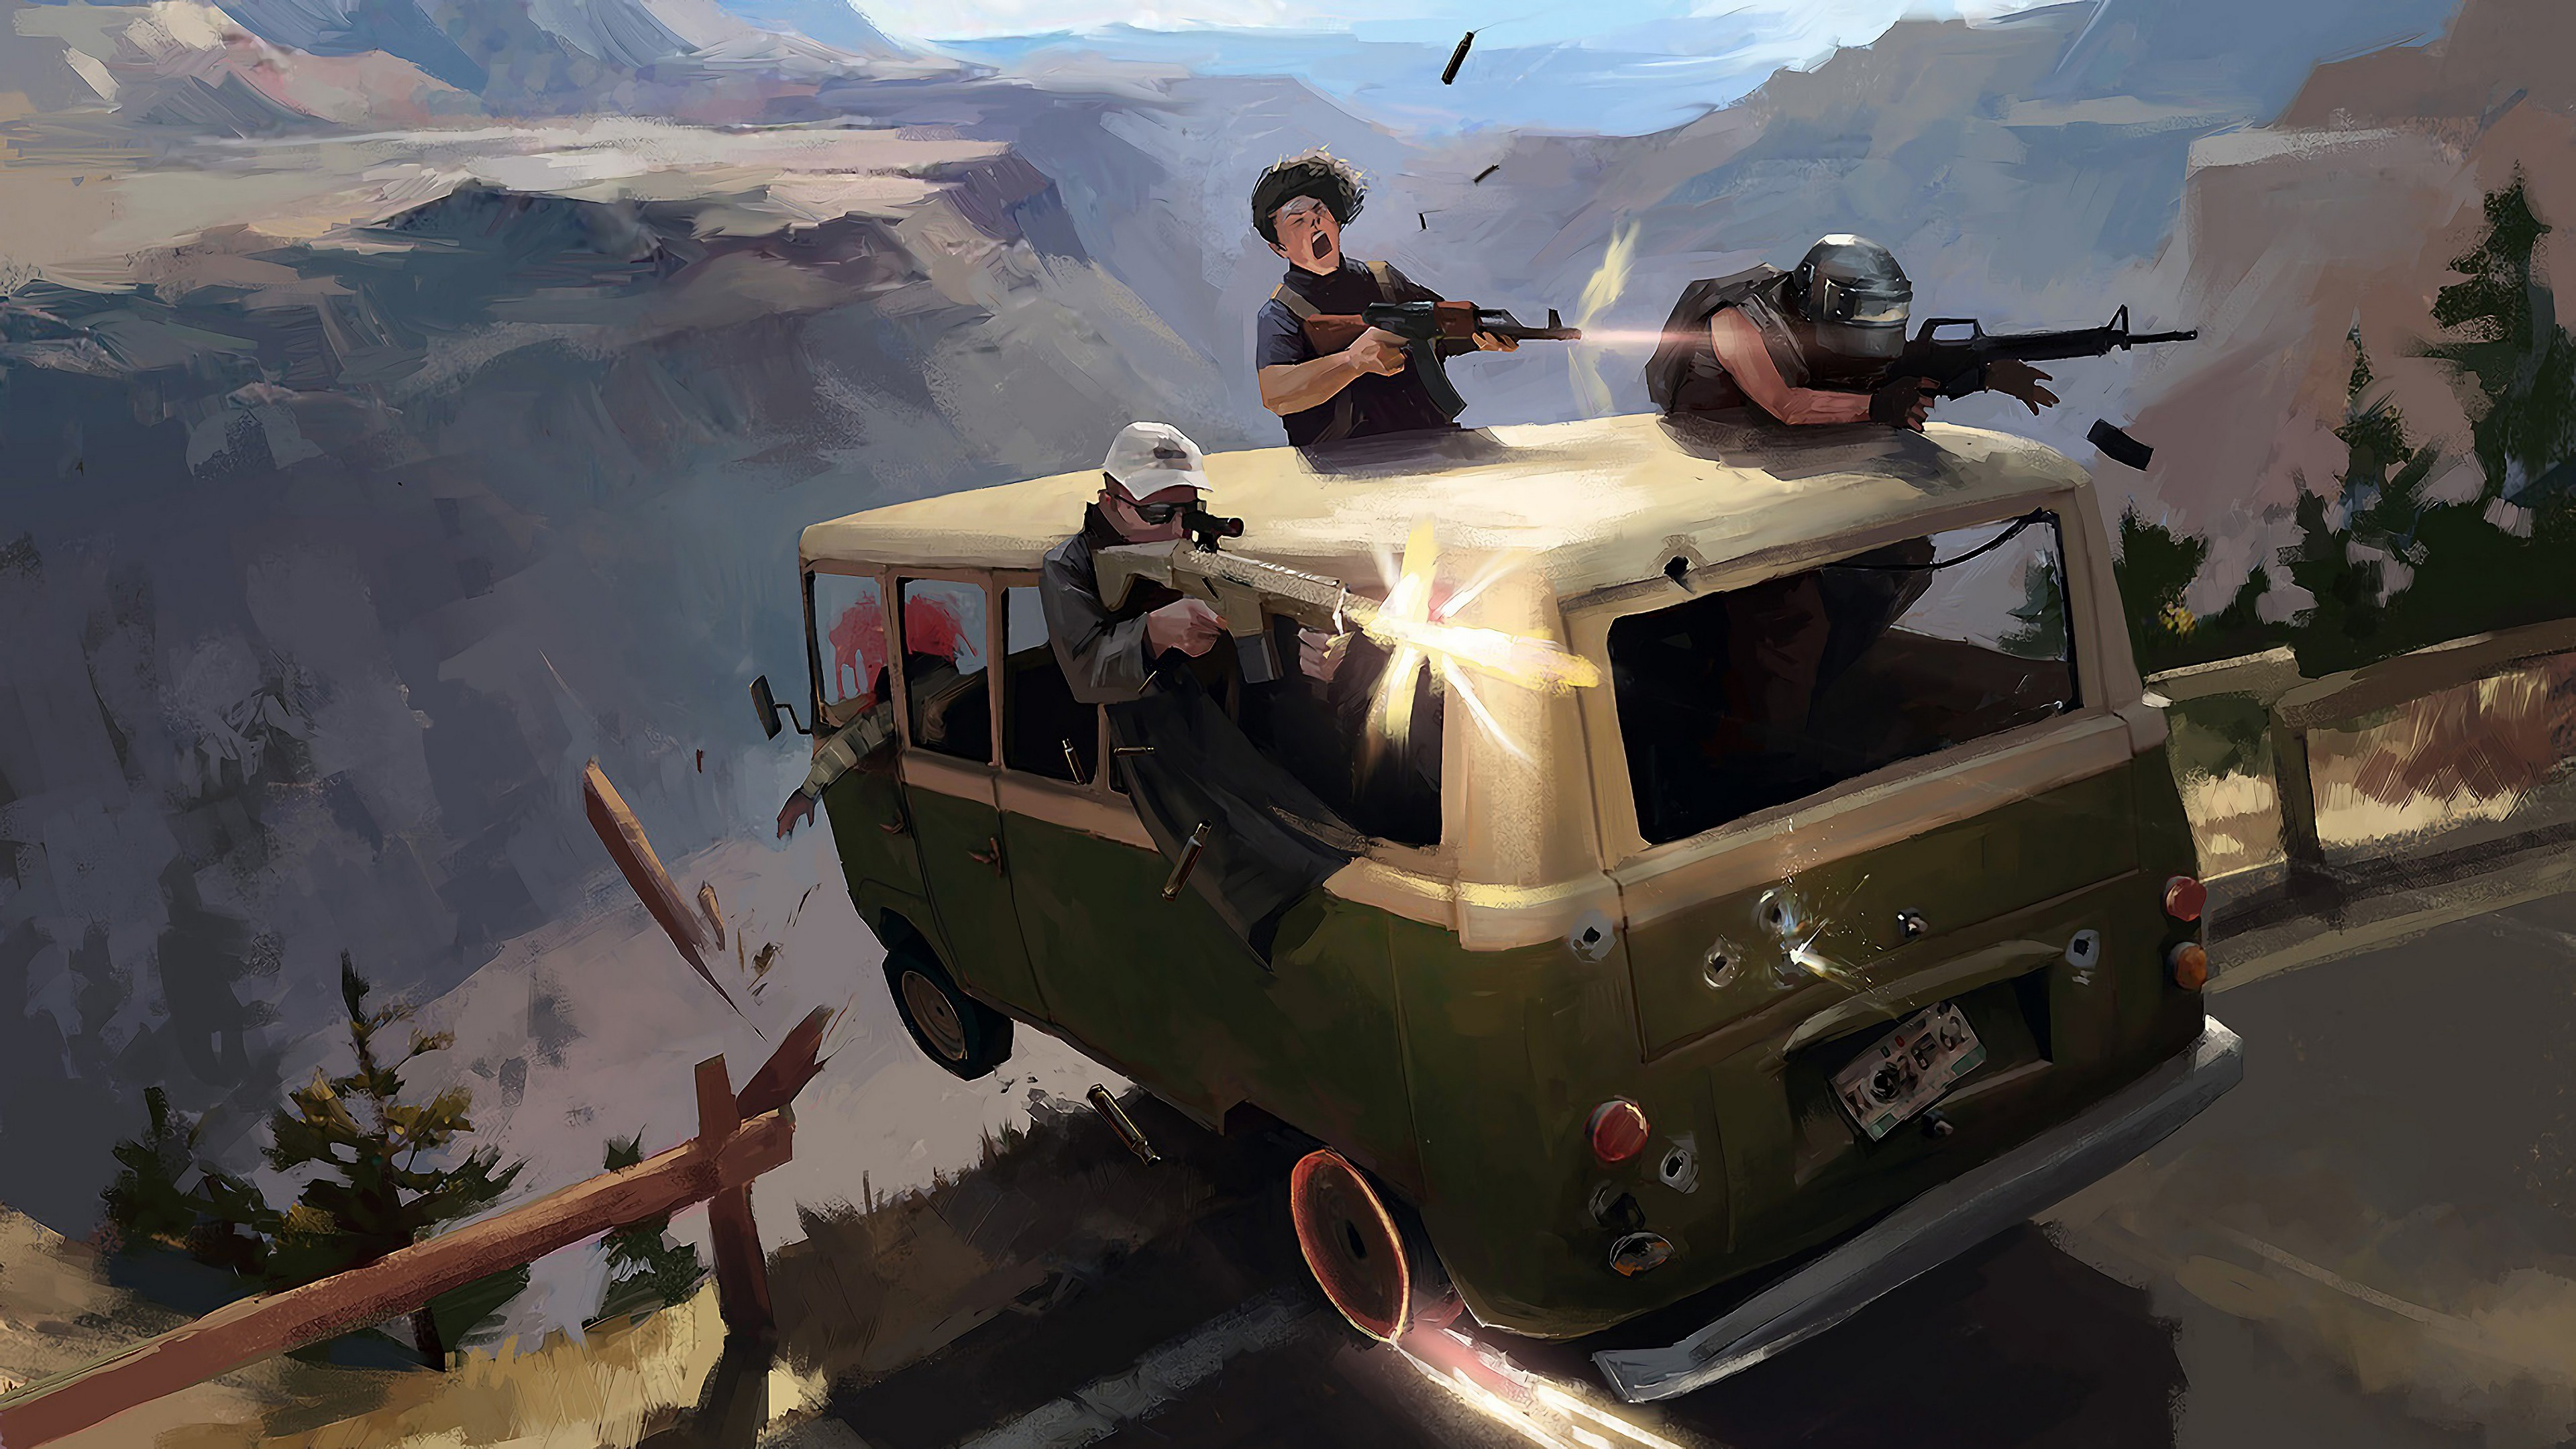 pubg minibus attack 4k 1558221485 - Pubg Minibus Attack 4k - pubg wallpapers, playerunknowns battlegrounds wallpapers, hd-wallpapers, games wallpapers, 4k-wallpapers, 2019 games wallpapers